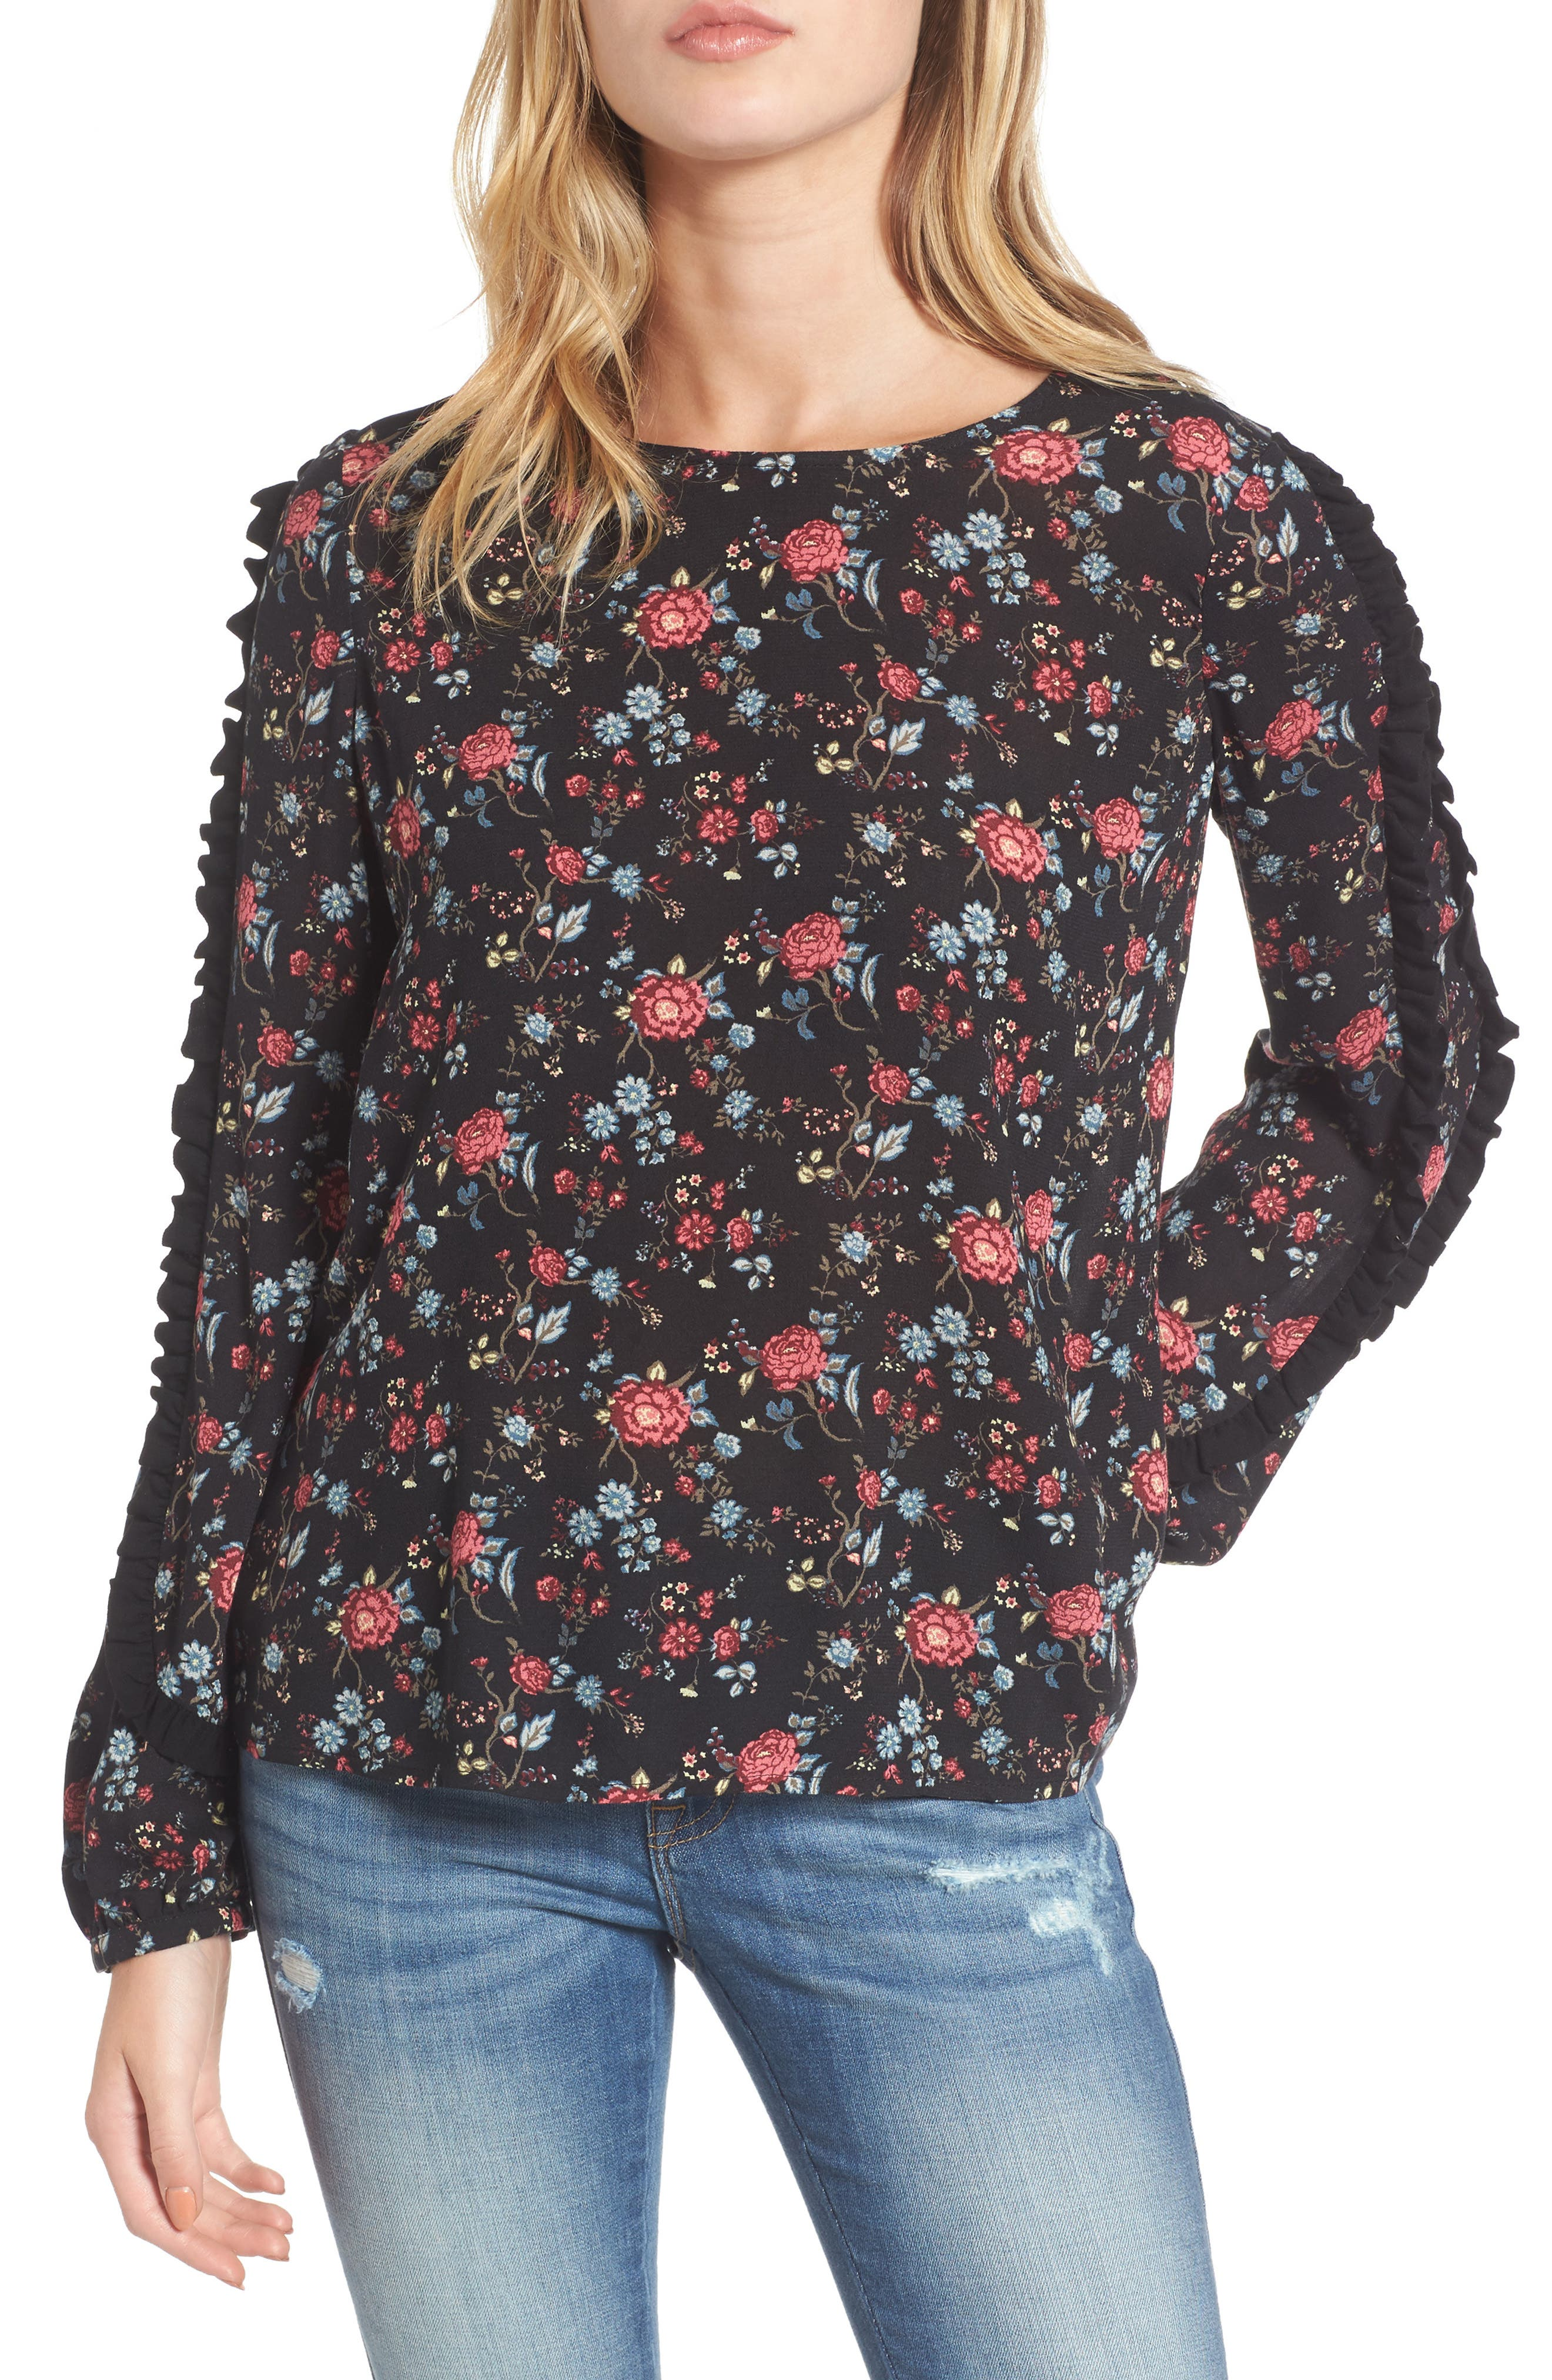 Main Image - BP. Ruffle Trim Floral Print Top